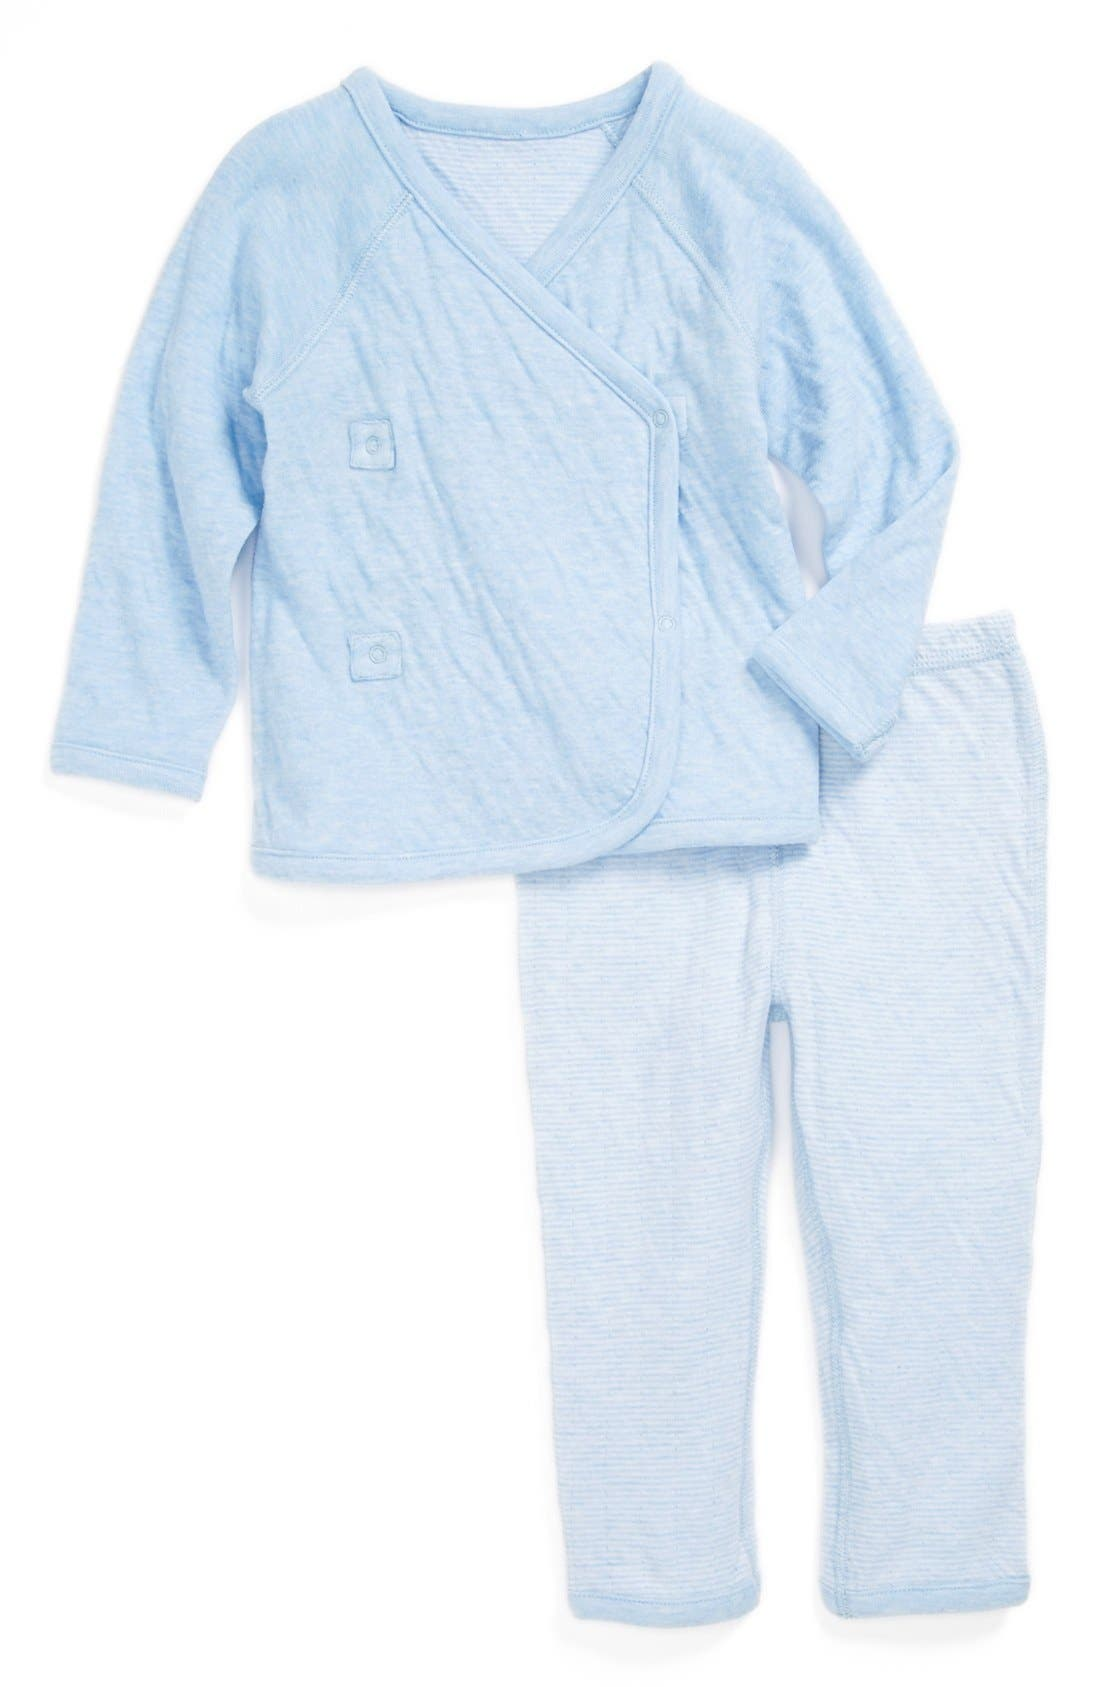 Alternate Image 1 Selected - Nordstrom Baby Layette Set